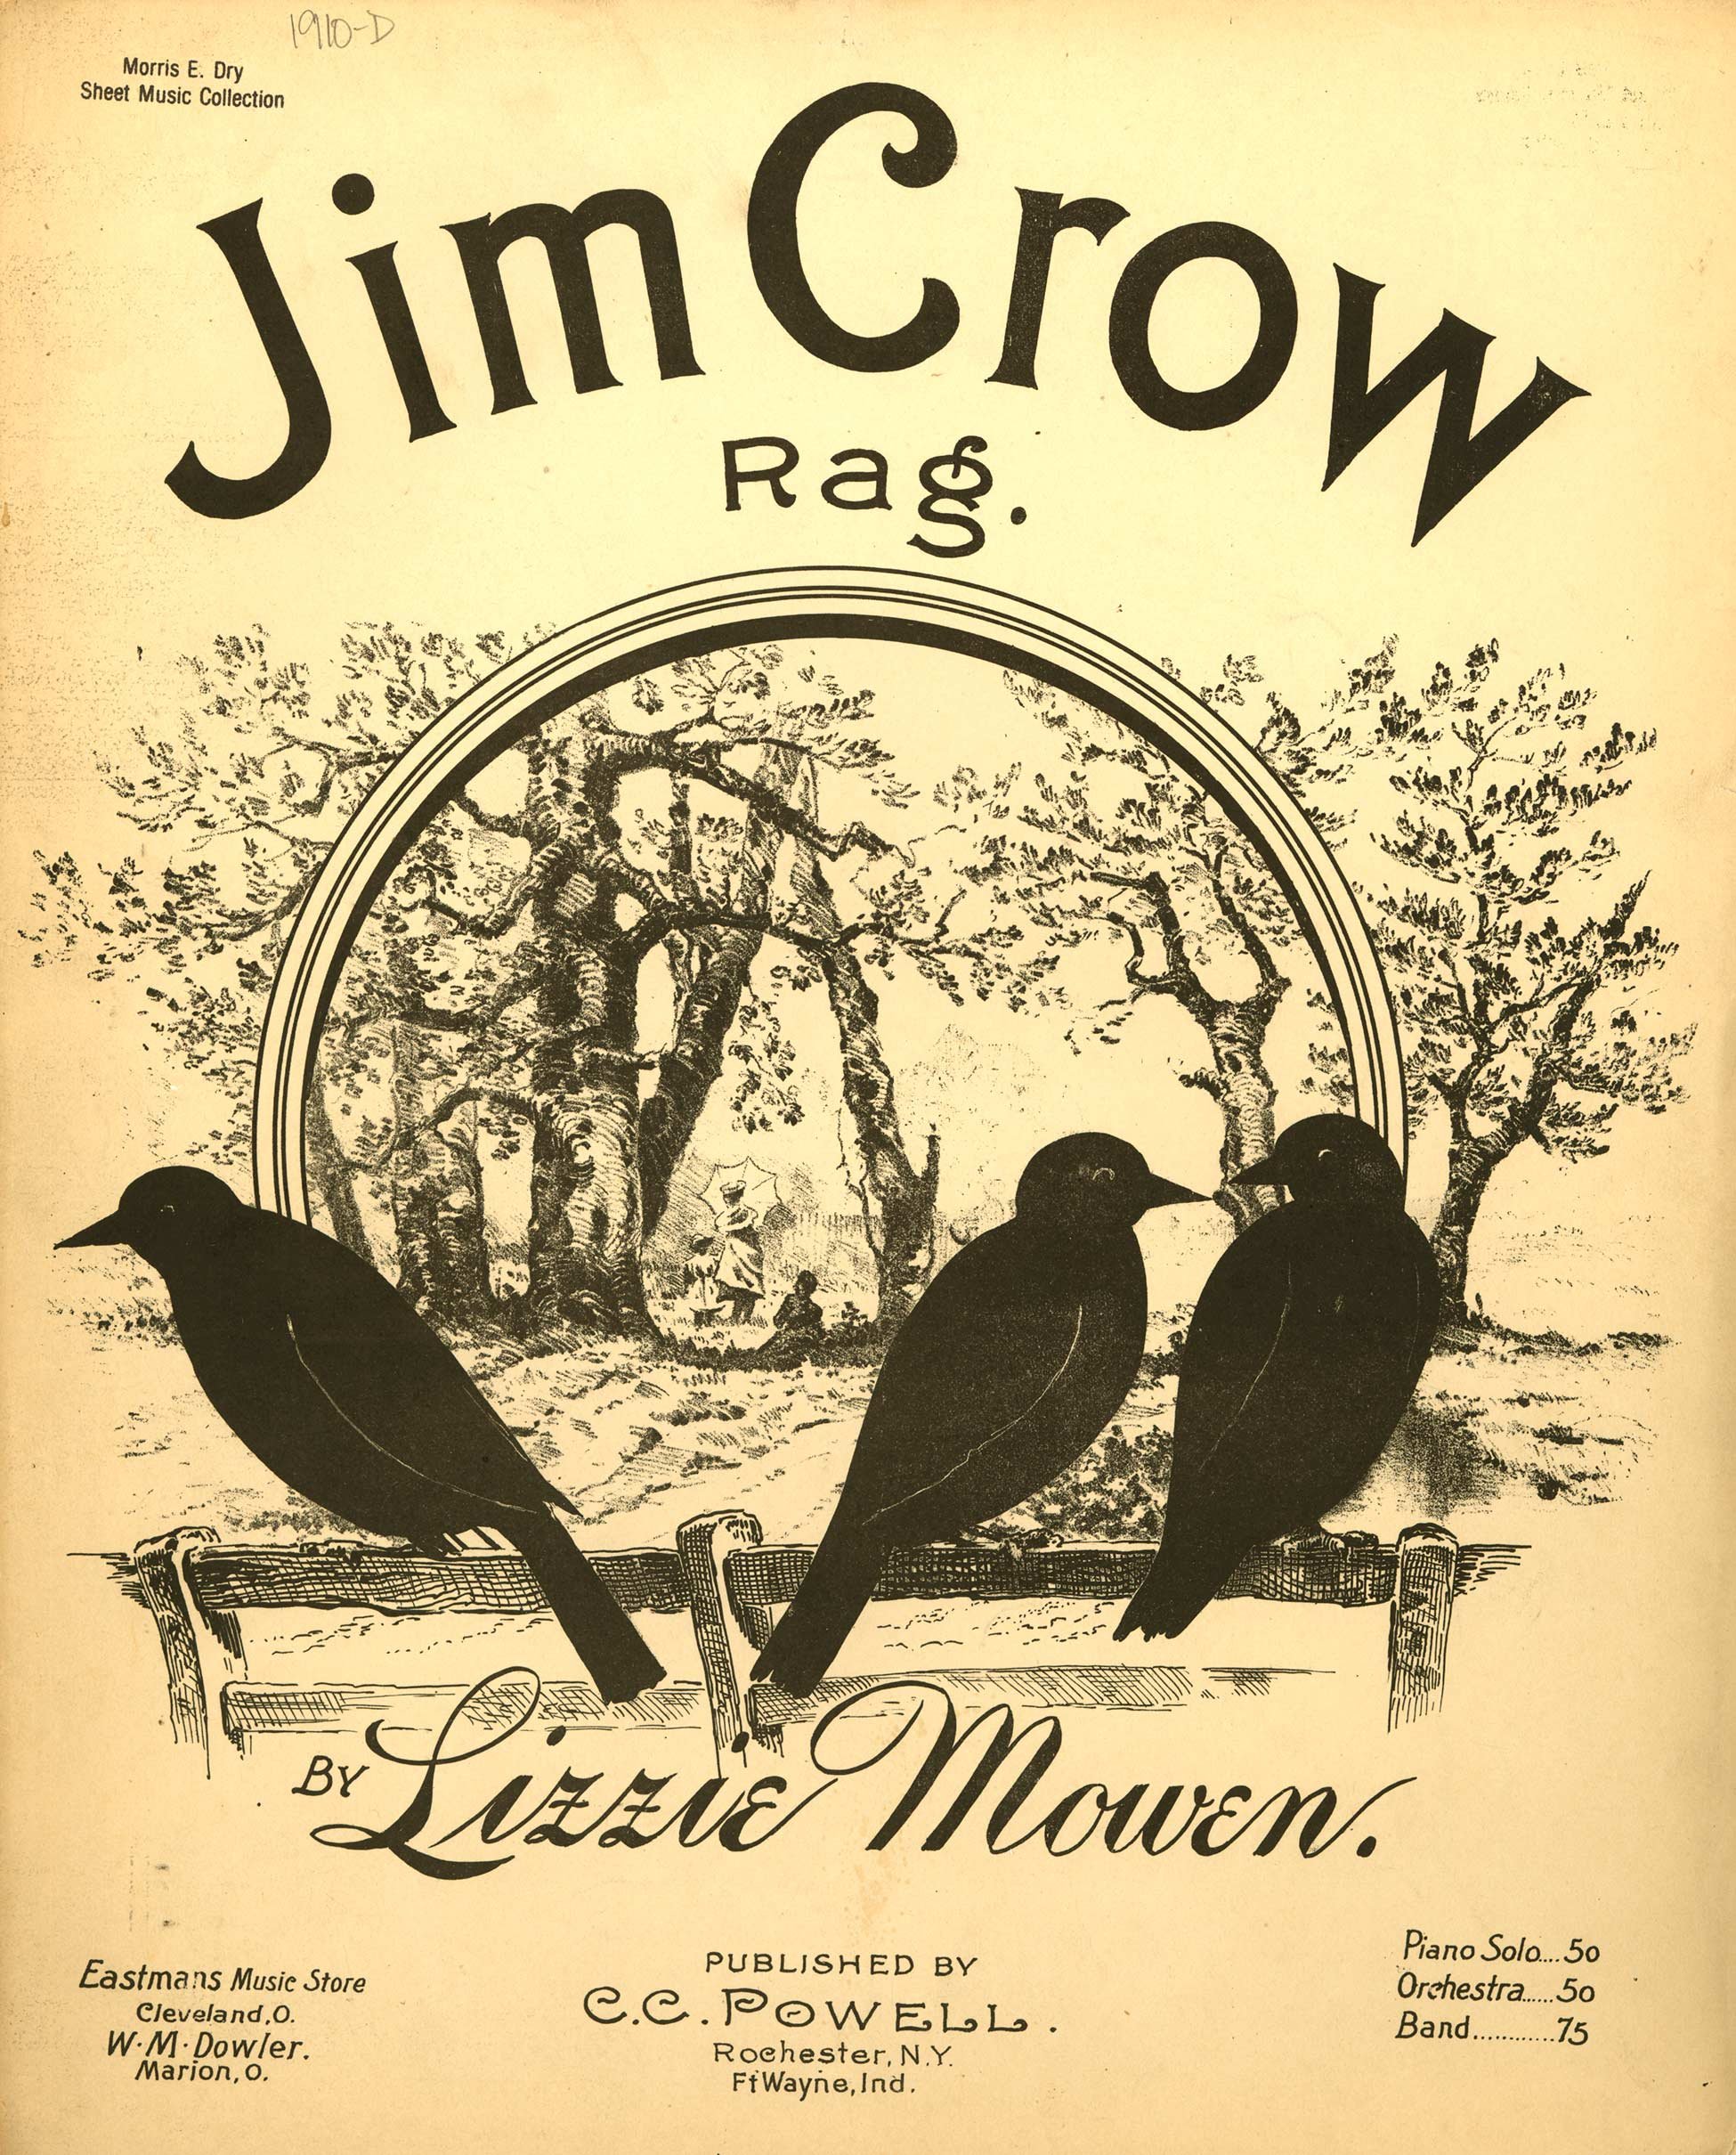 the impact of the jim crow law on the black people in the united states Essay about jim crow laws in the united states  it allowed white people to harass black people  the jim crow laws had a large impact on american history.